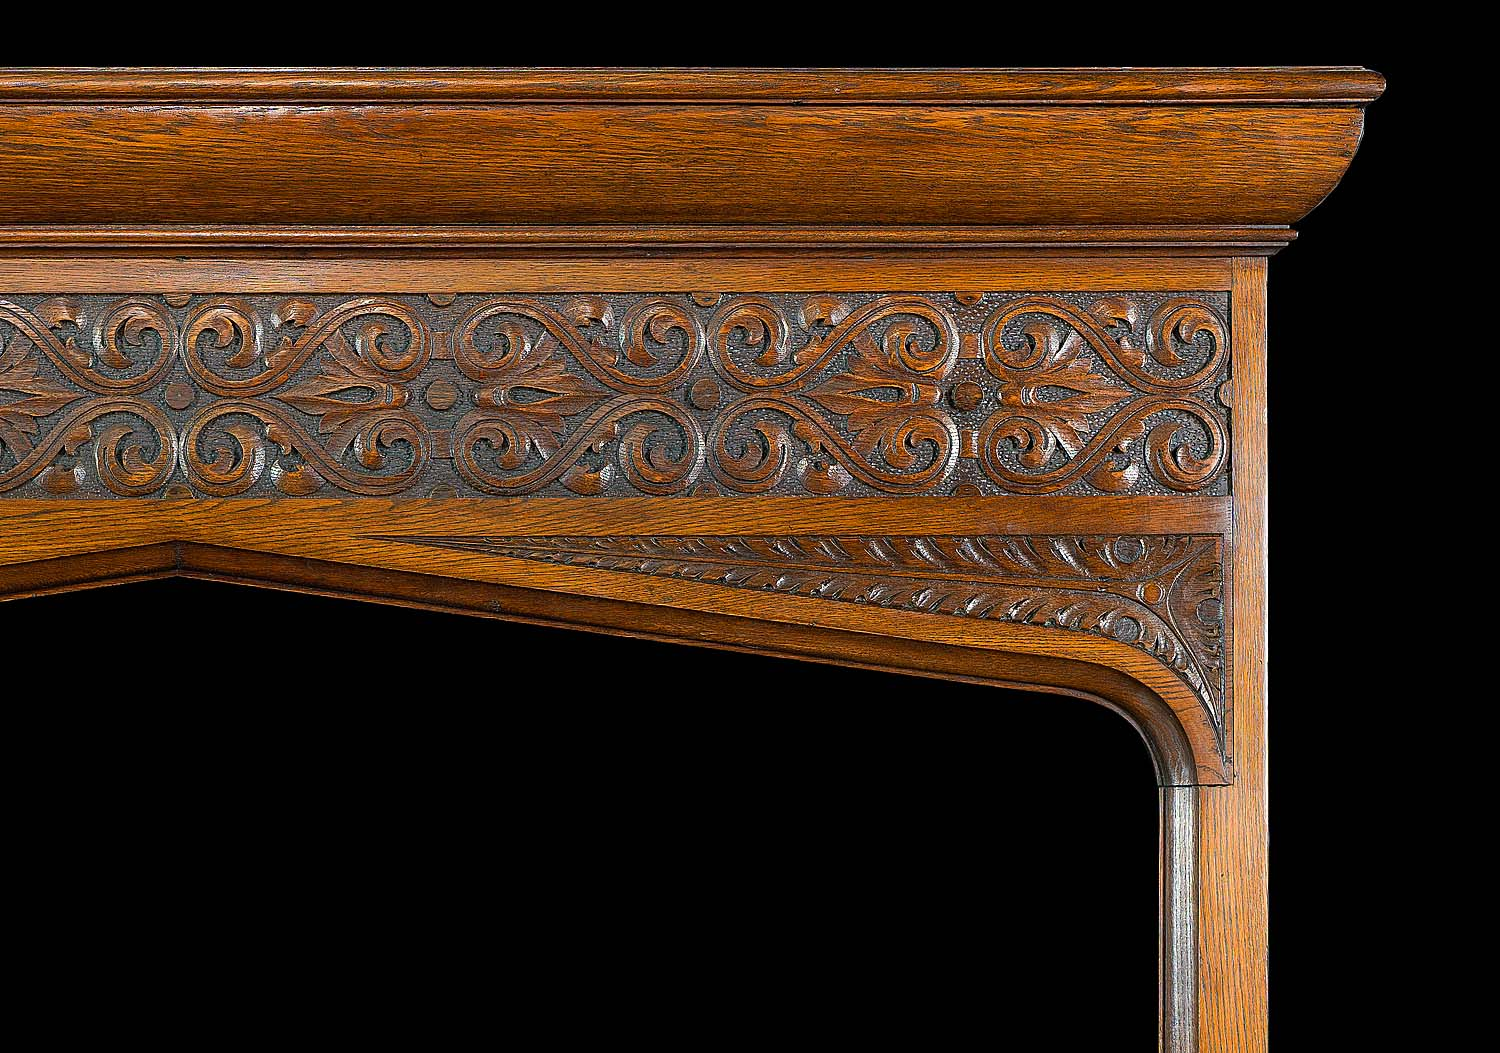 A Gothic Revival oak antique fireplace with Celtic patterned carving